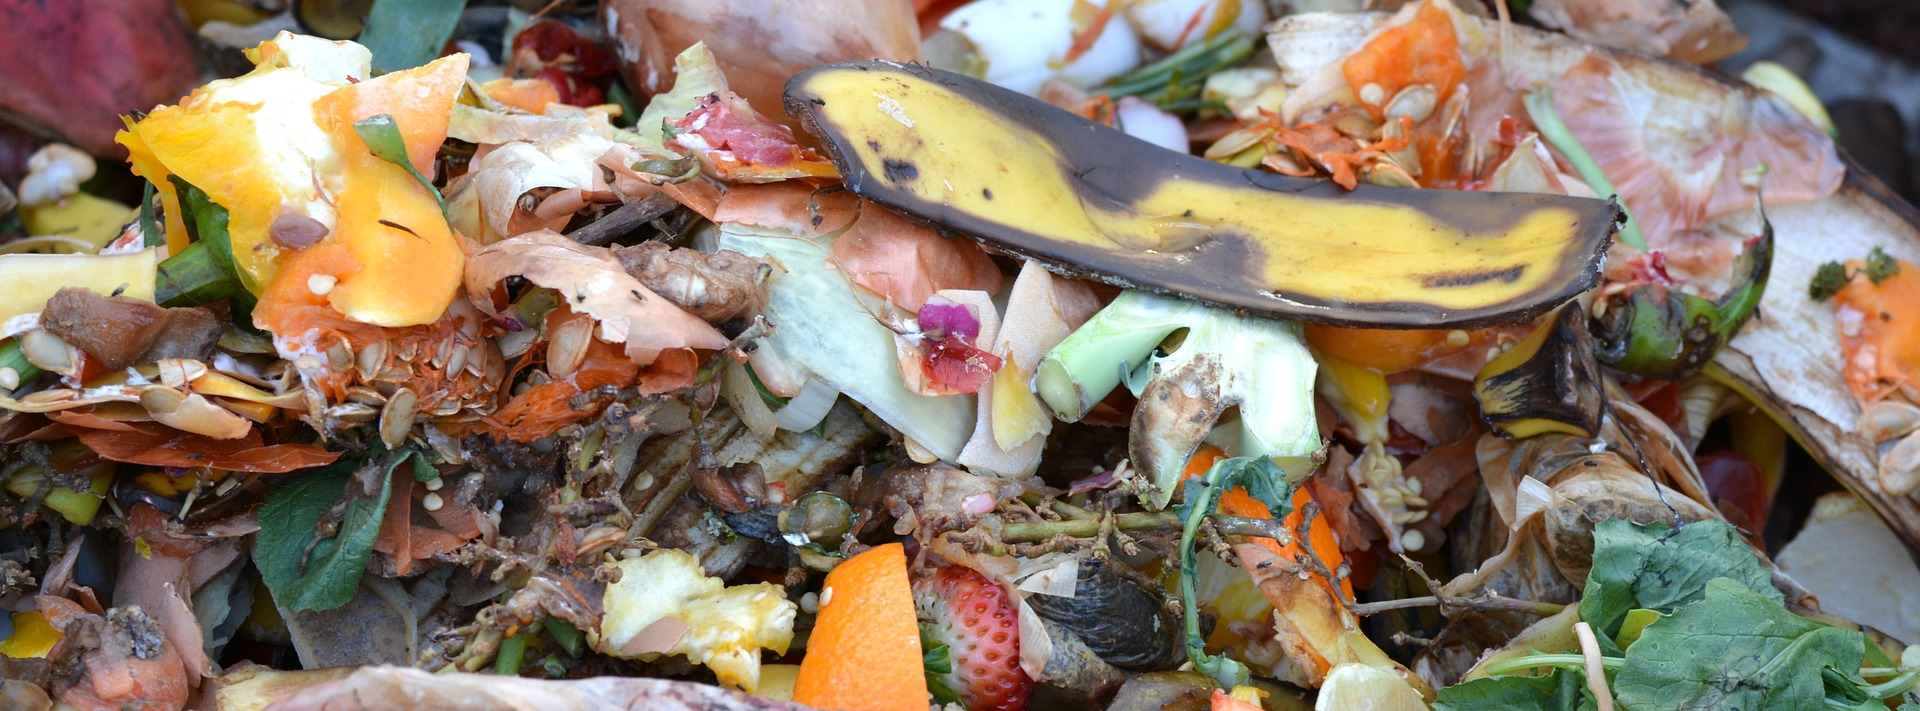 A colourful compost scrap heap